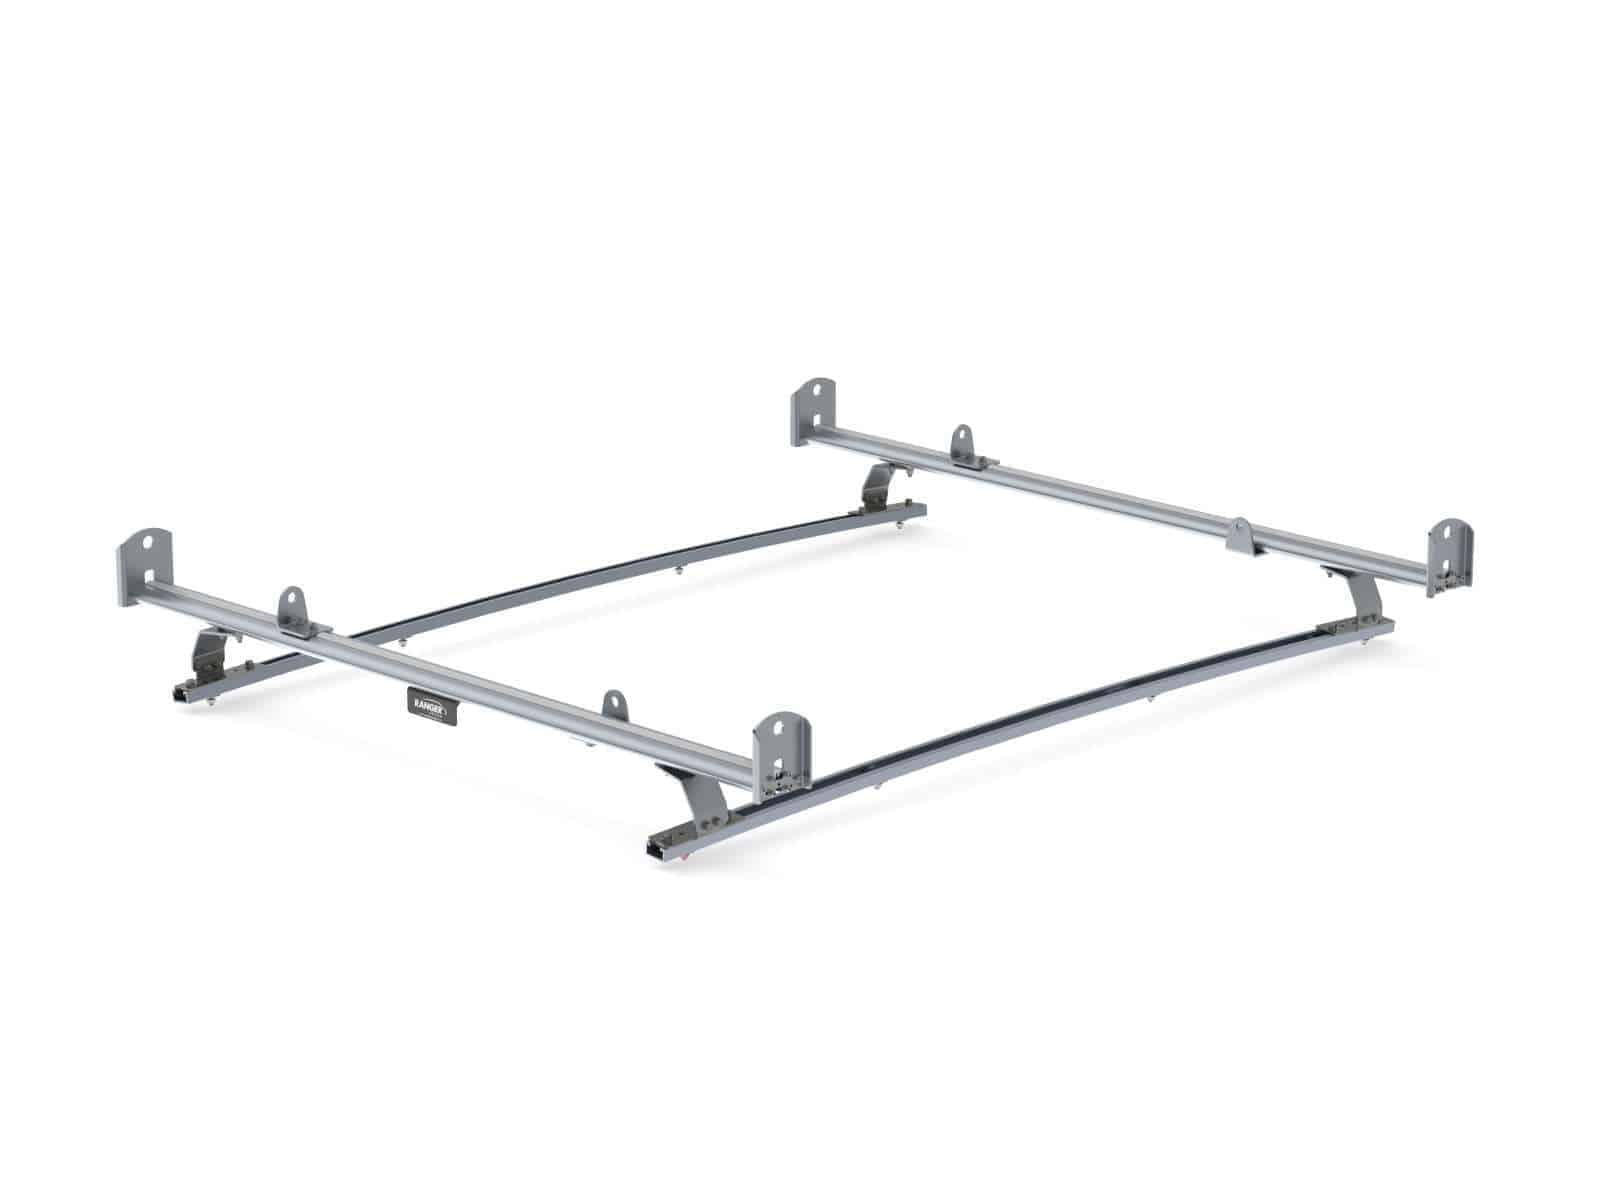 Cargo Rack For Vans 2 Bar System Ford Transit Connect